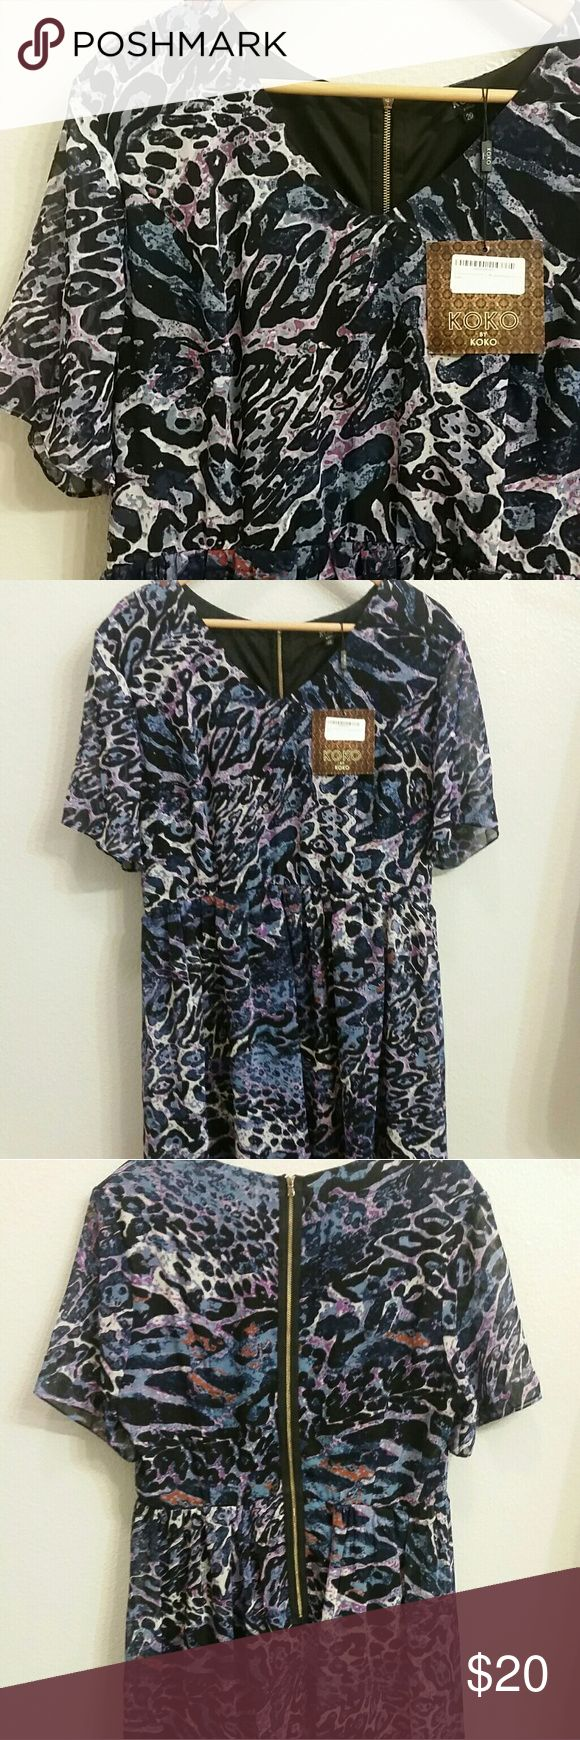 Chiffon Skater Dress Plus sized women's purple animal print chiffon skater dress; fully lined; zip up in back; purple/blue/black; short-sleeved; 100% poly; European (UK) size 20, NWT (price removed) (last photo is a stock photo only to convey fit, not color) Koko by Koko Dresses